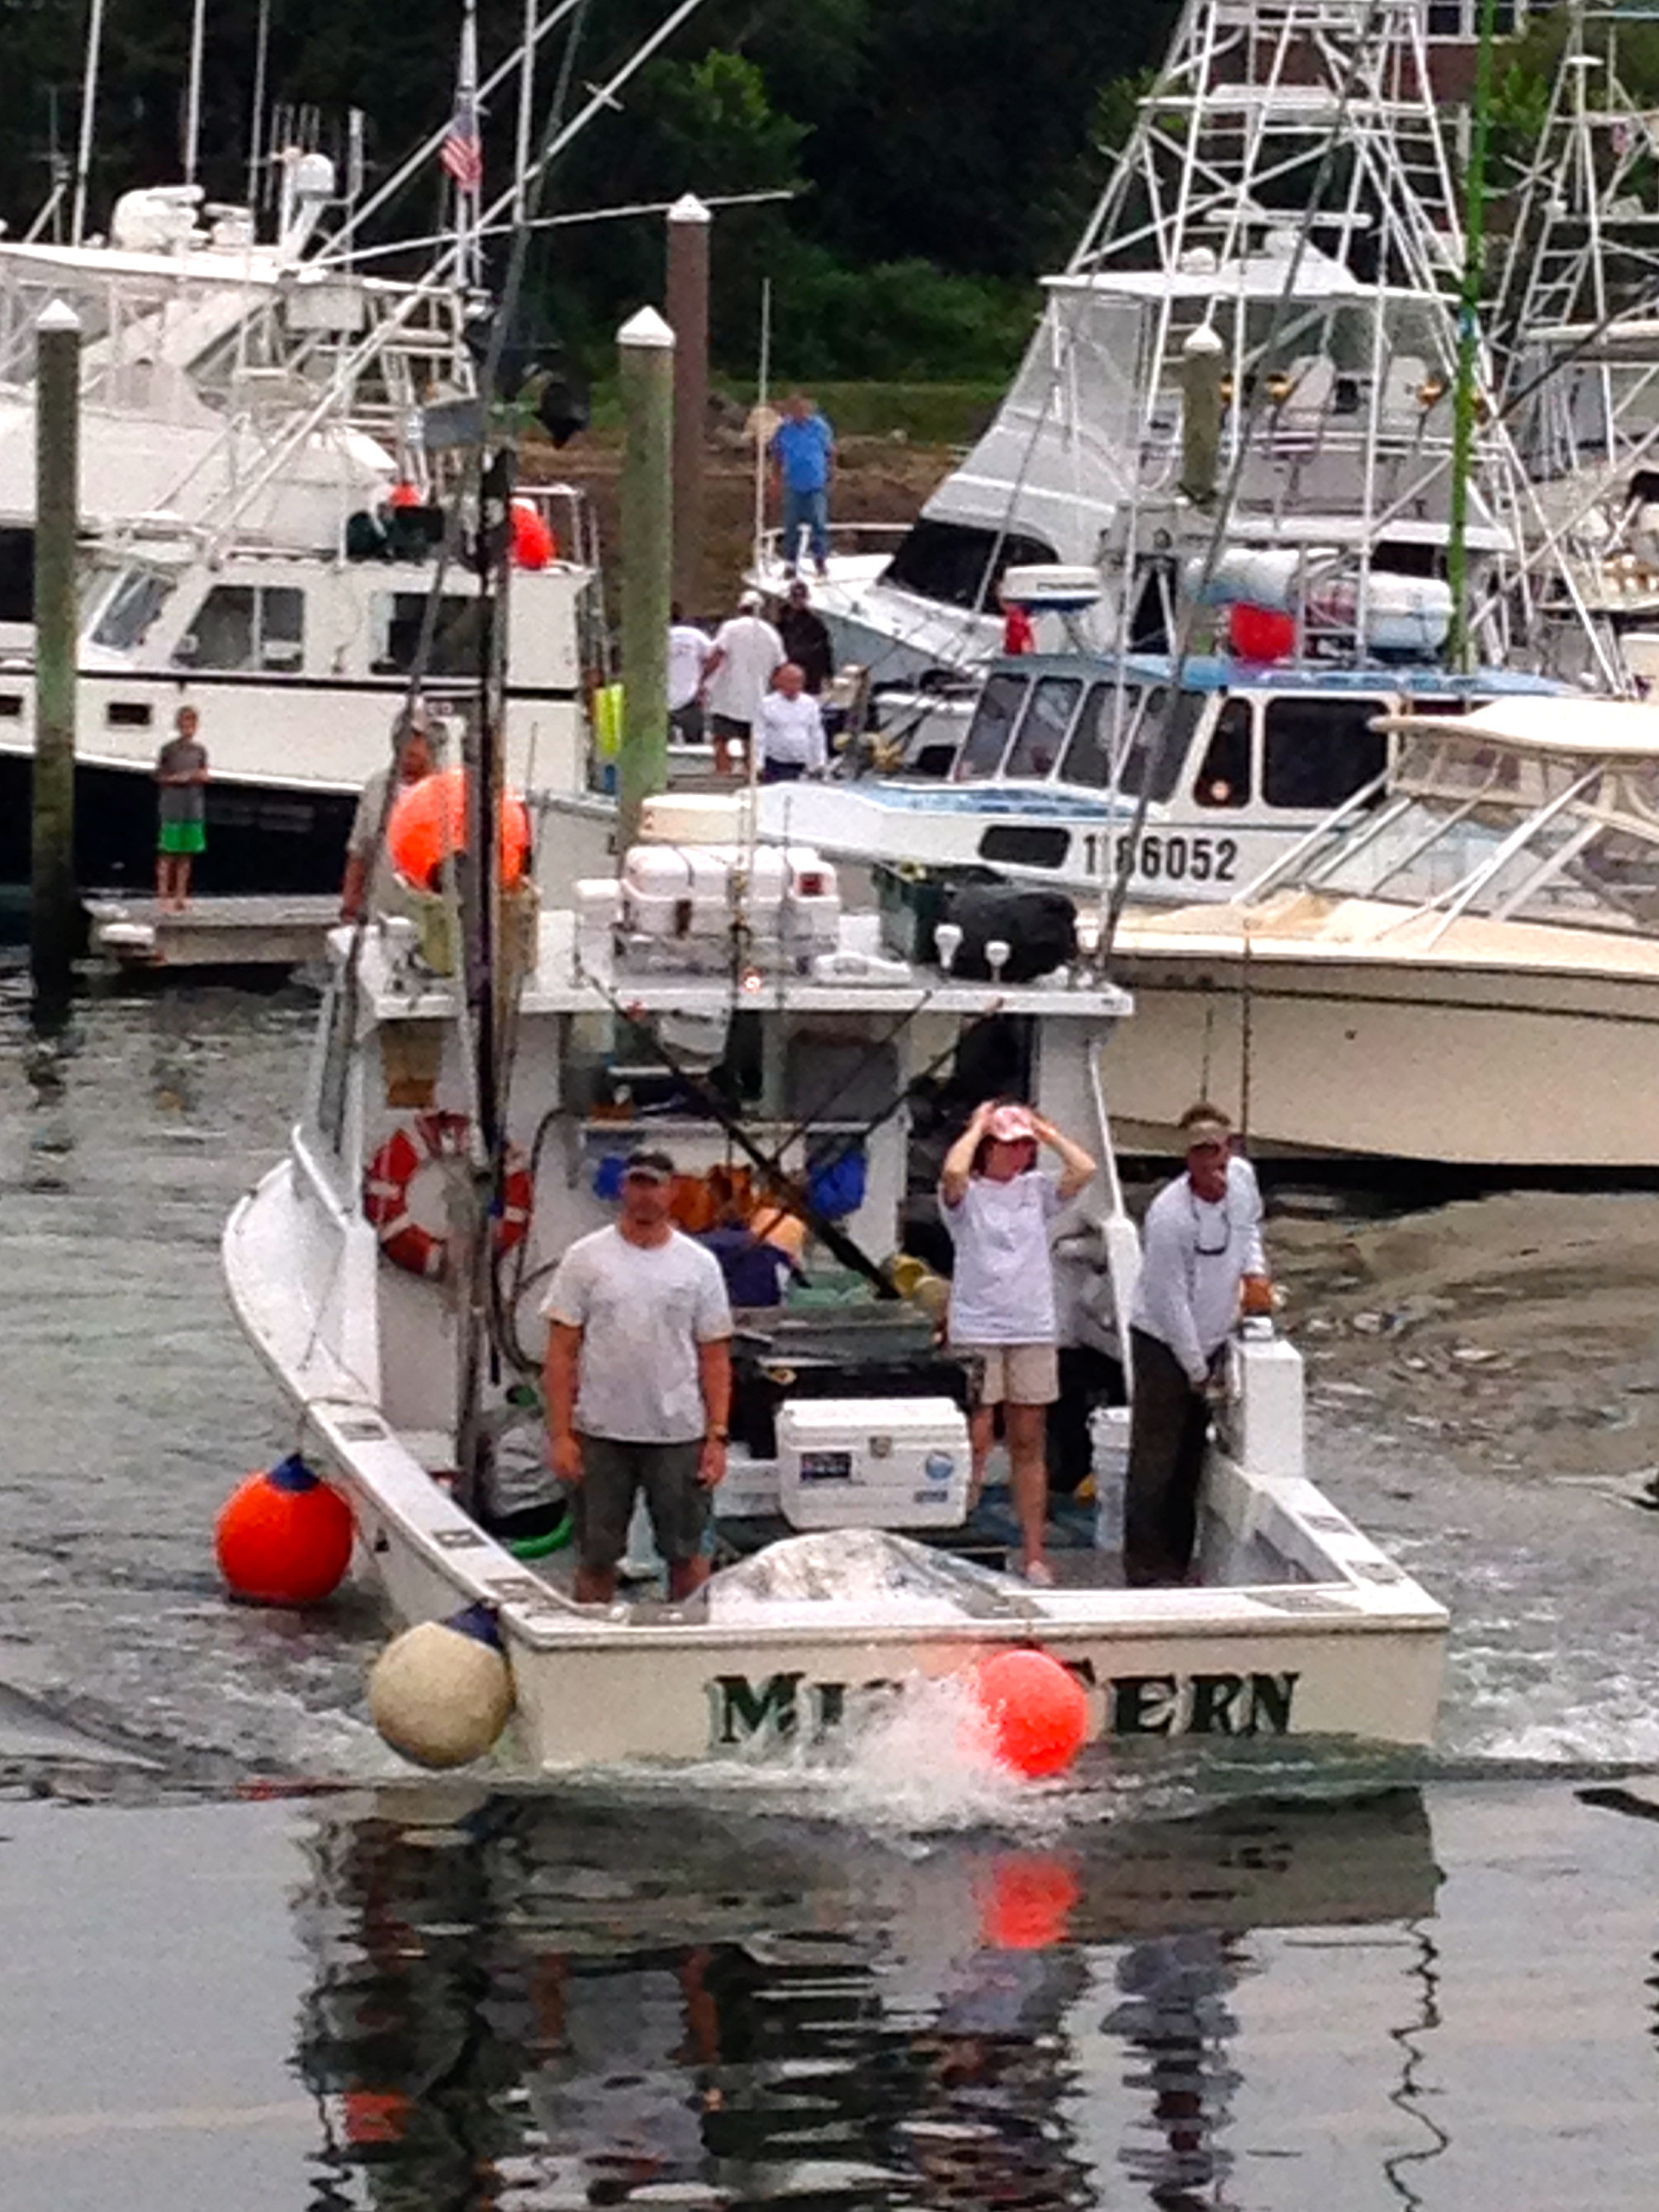 First Fish arrives at the dock